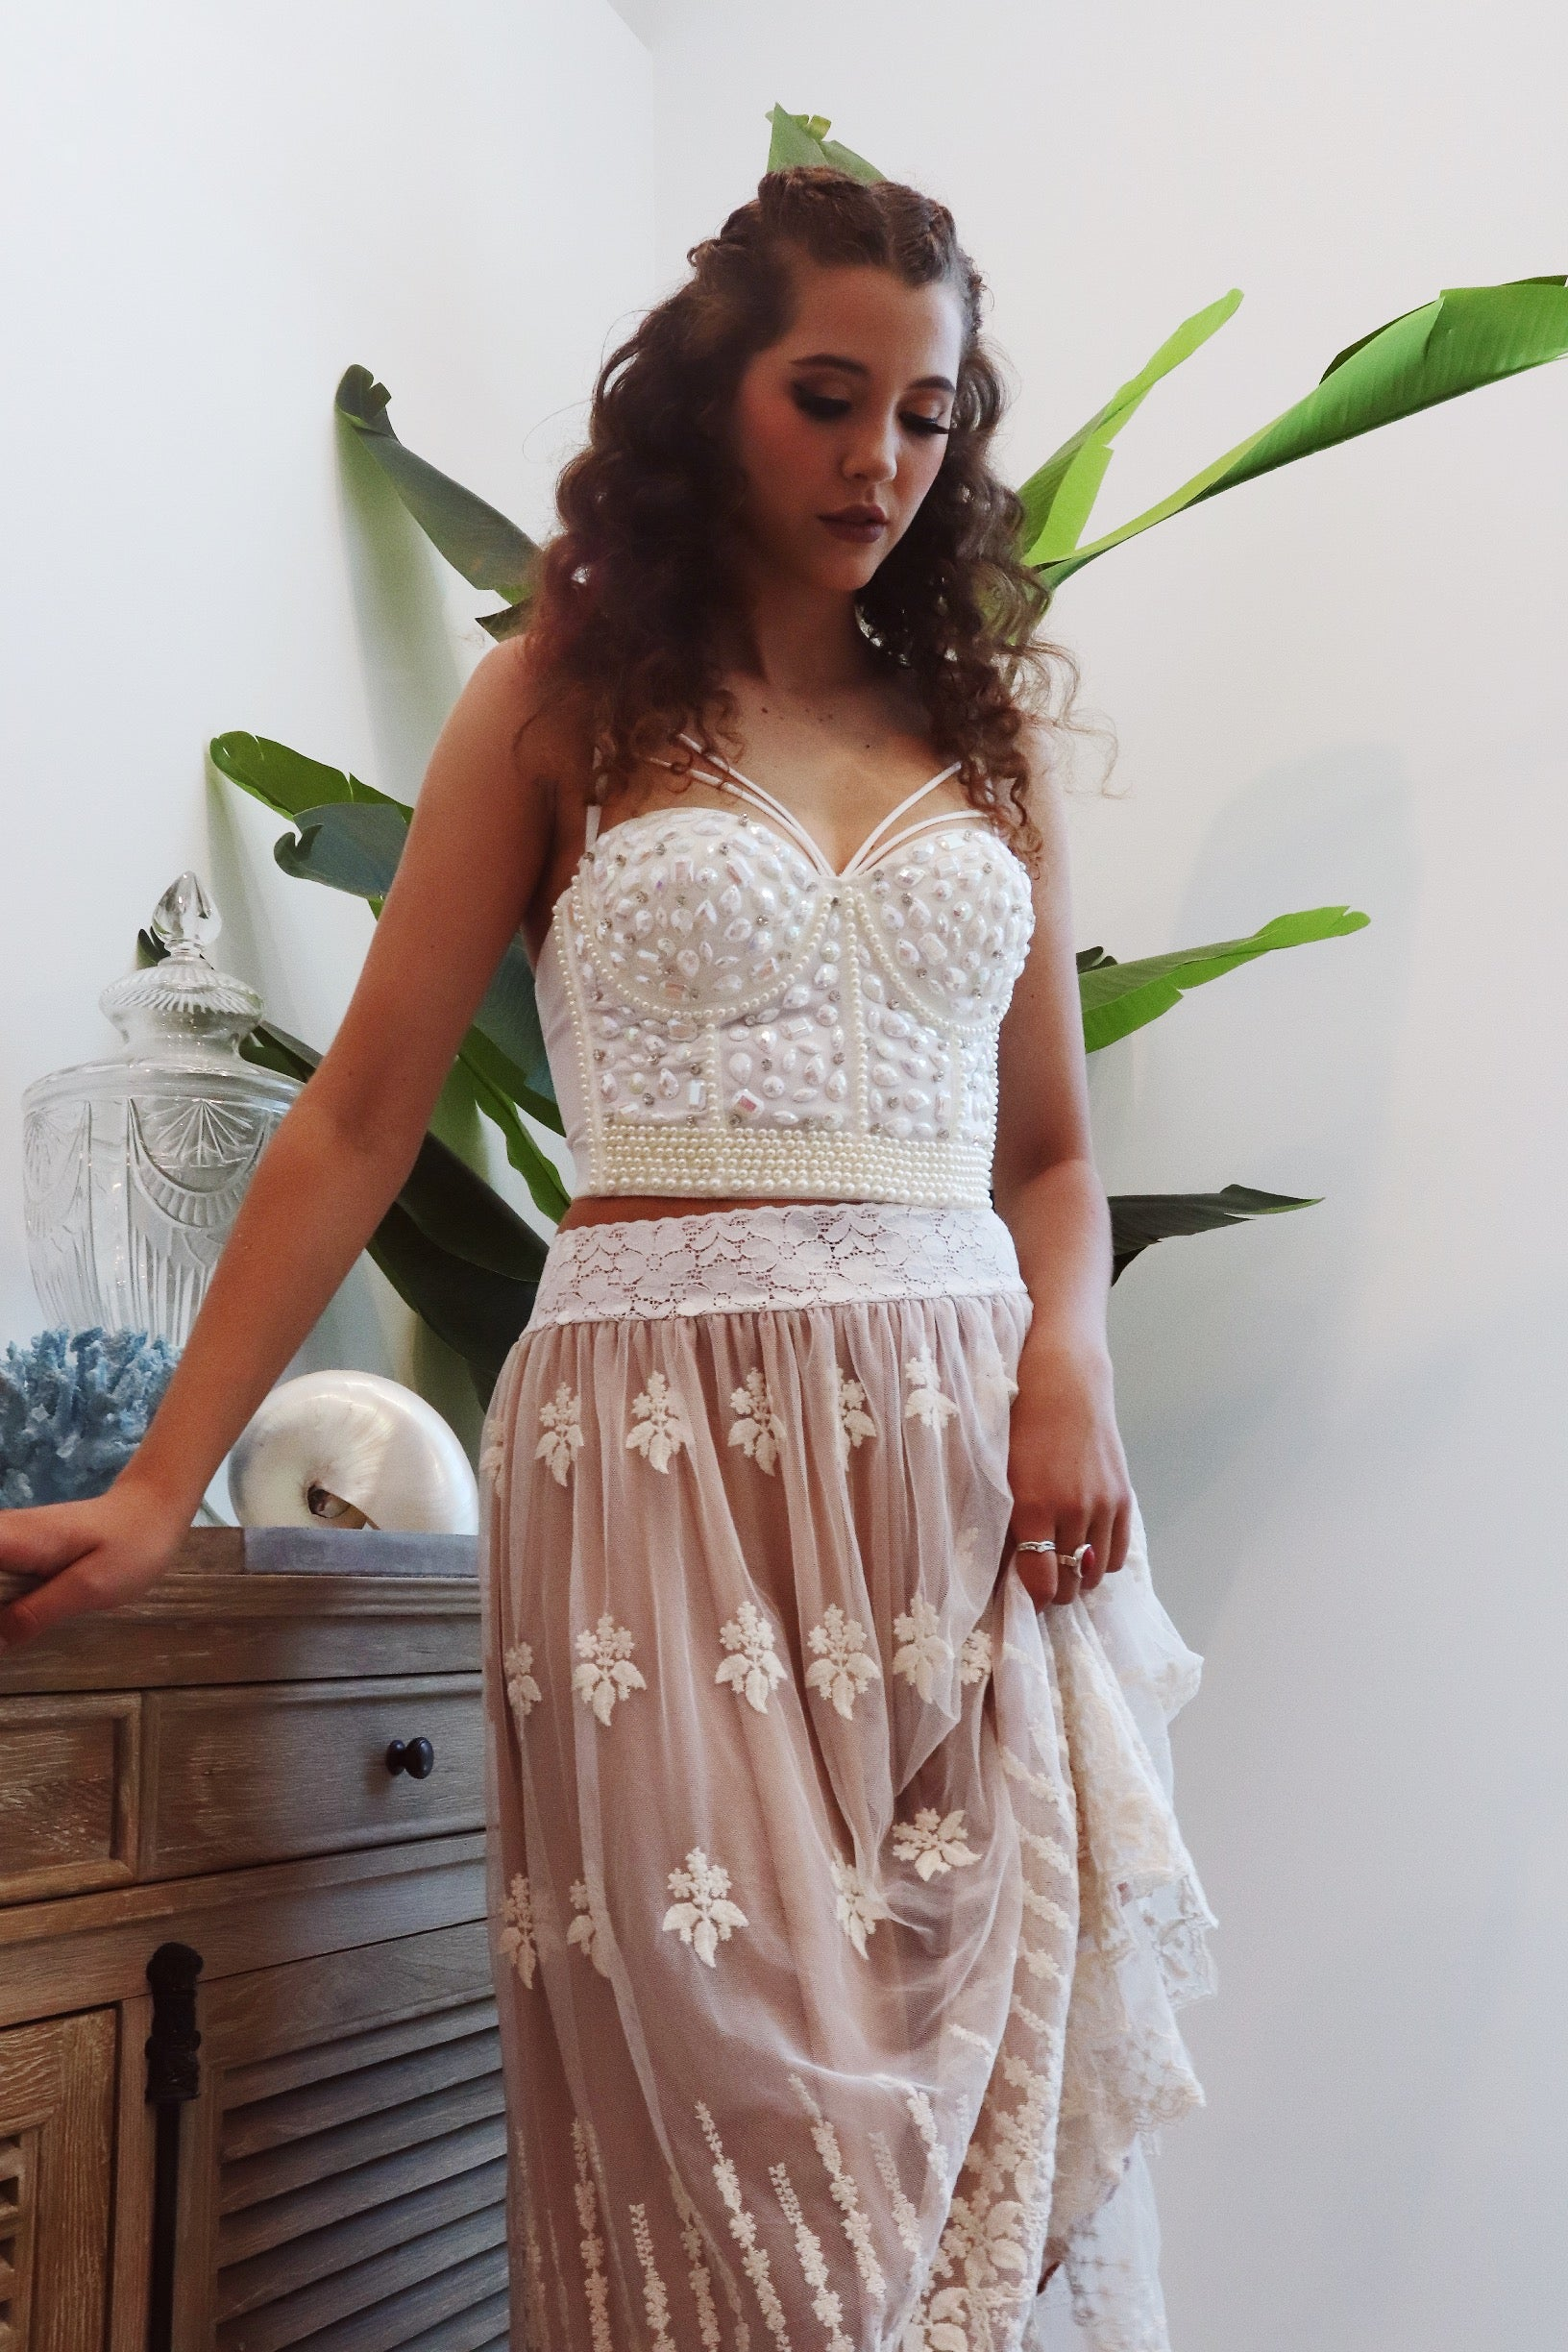 Mermaid Bustier - Purity Lace Designs